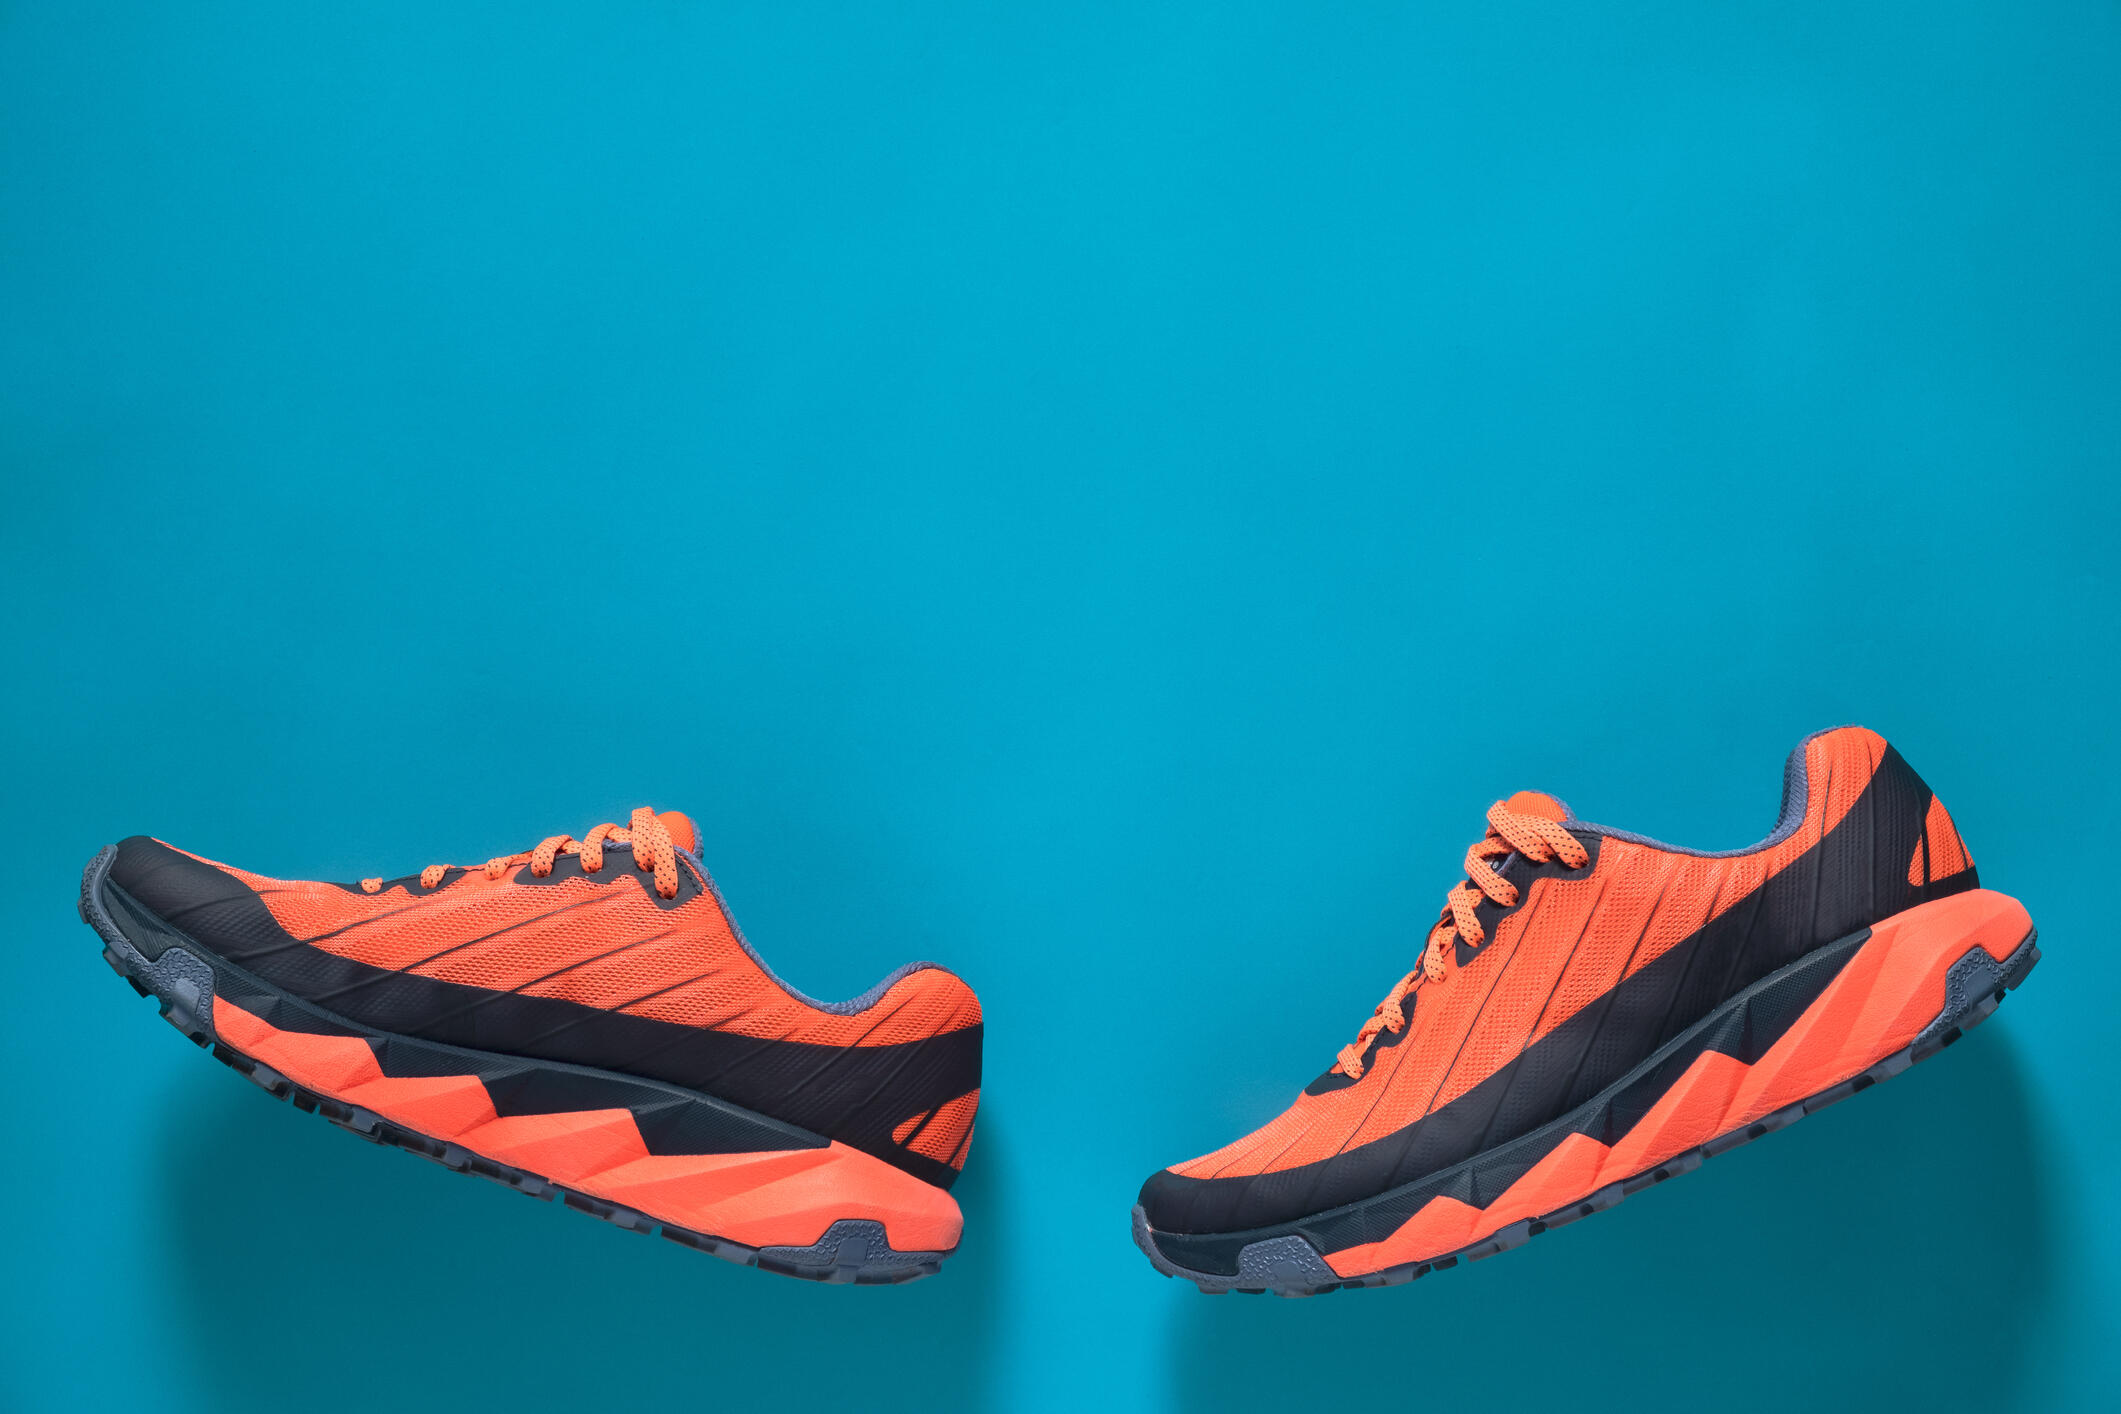 Orange and black running shoes on a bright blue background